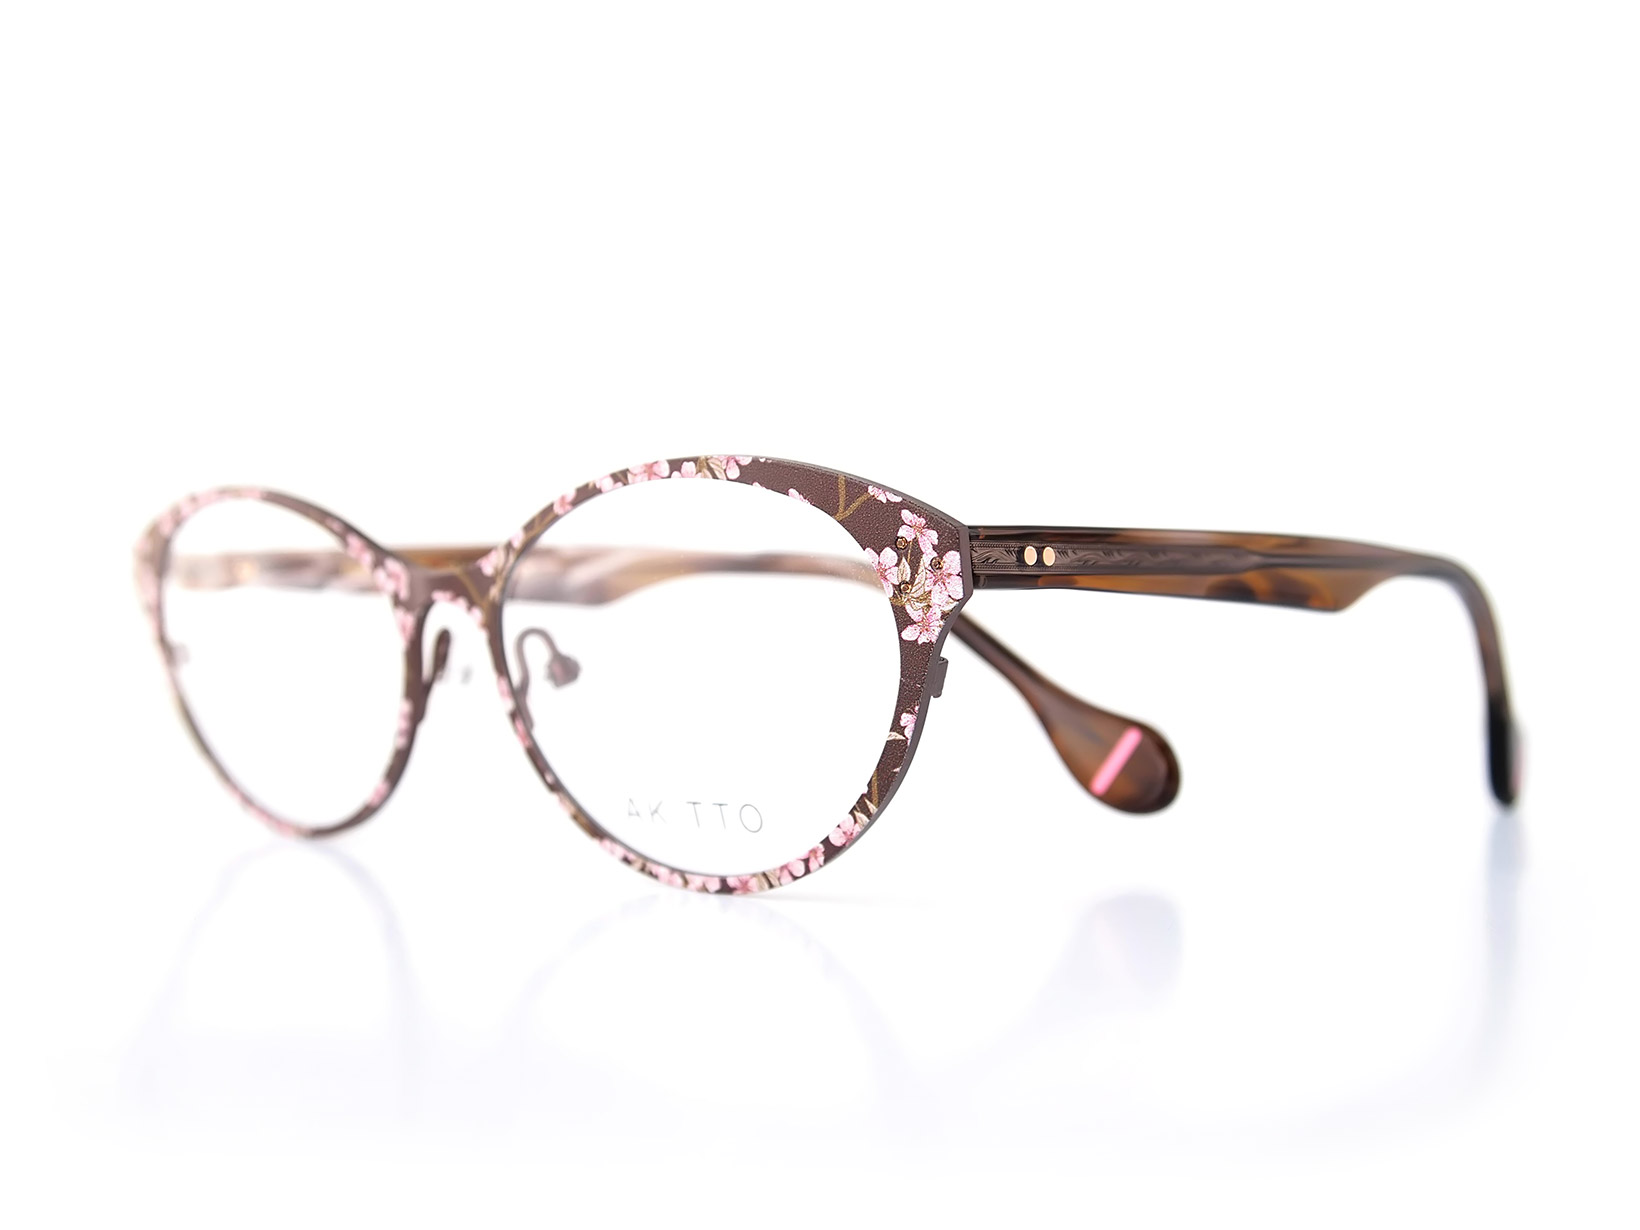 AKITTO 2016-2nd mai color|SAKURA size:53□16 material:titanium+acetate price:42,000-(+tax)